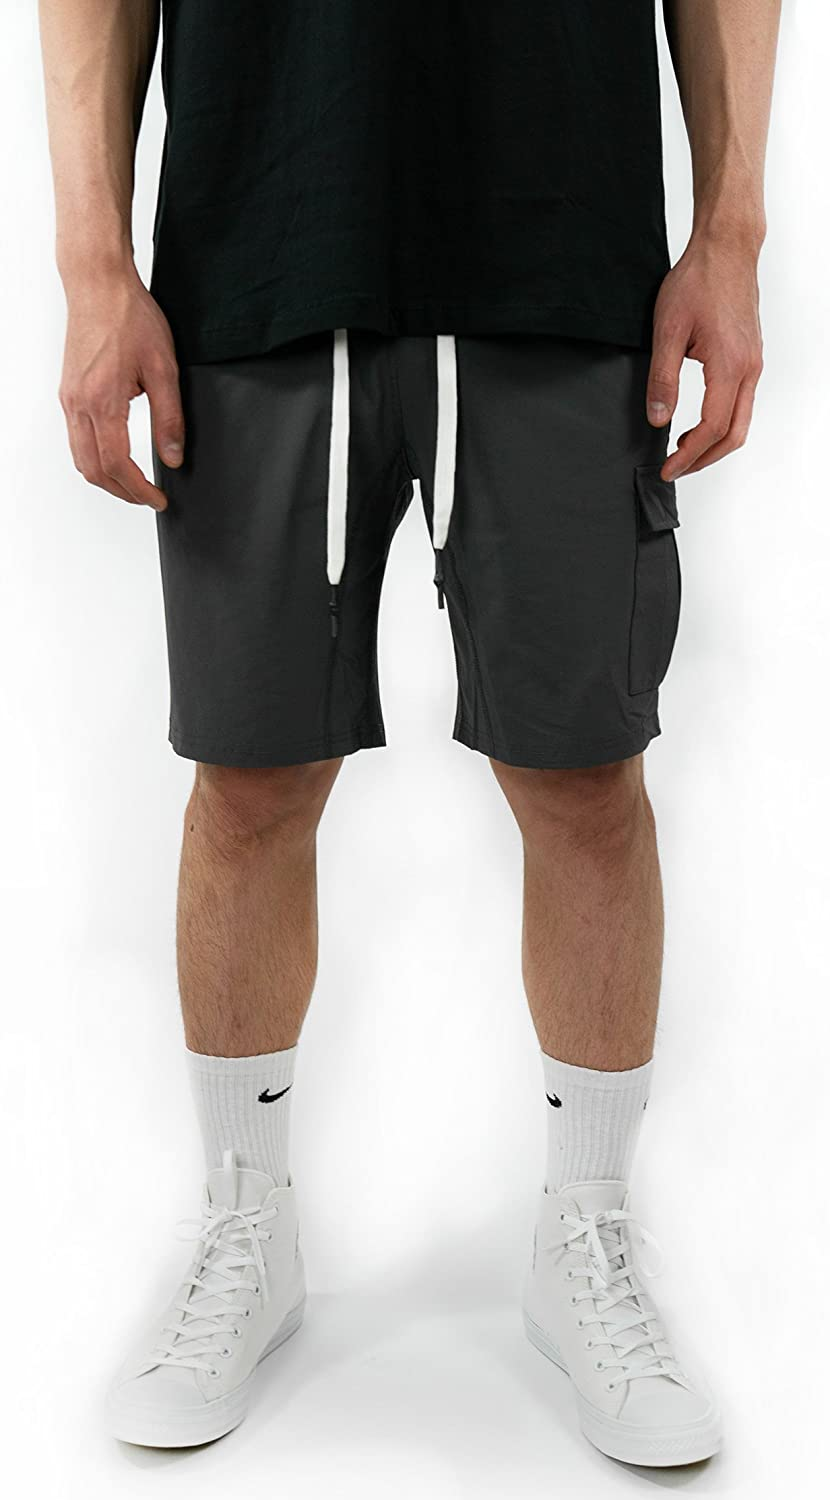 Onthec Active Tech Shorts Performance Based Gray Fitness Bottoms Track Nylon Tactical Cargo Pocket